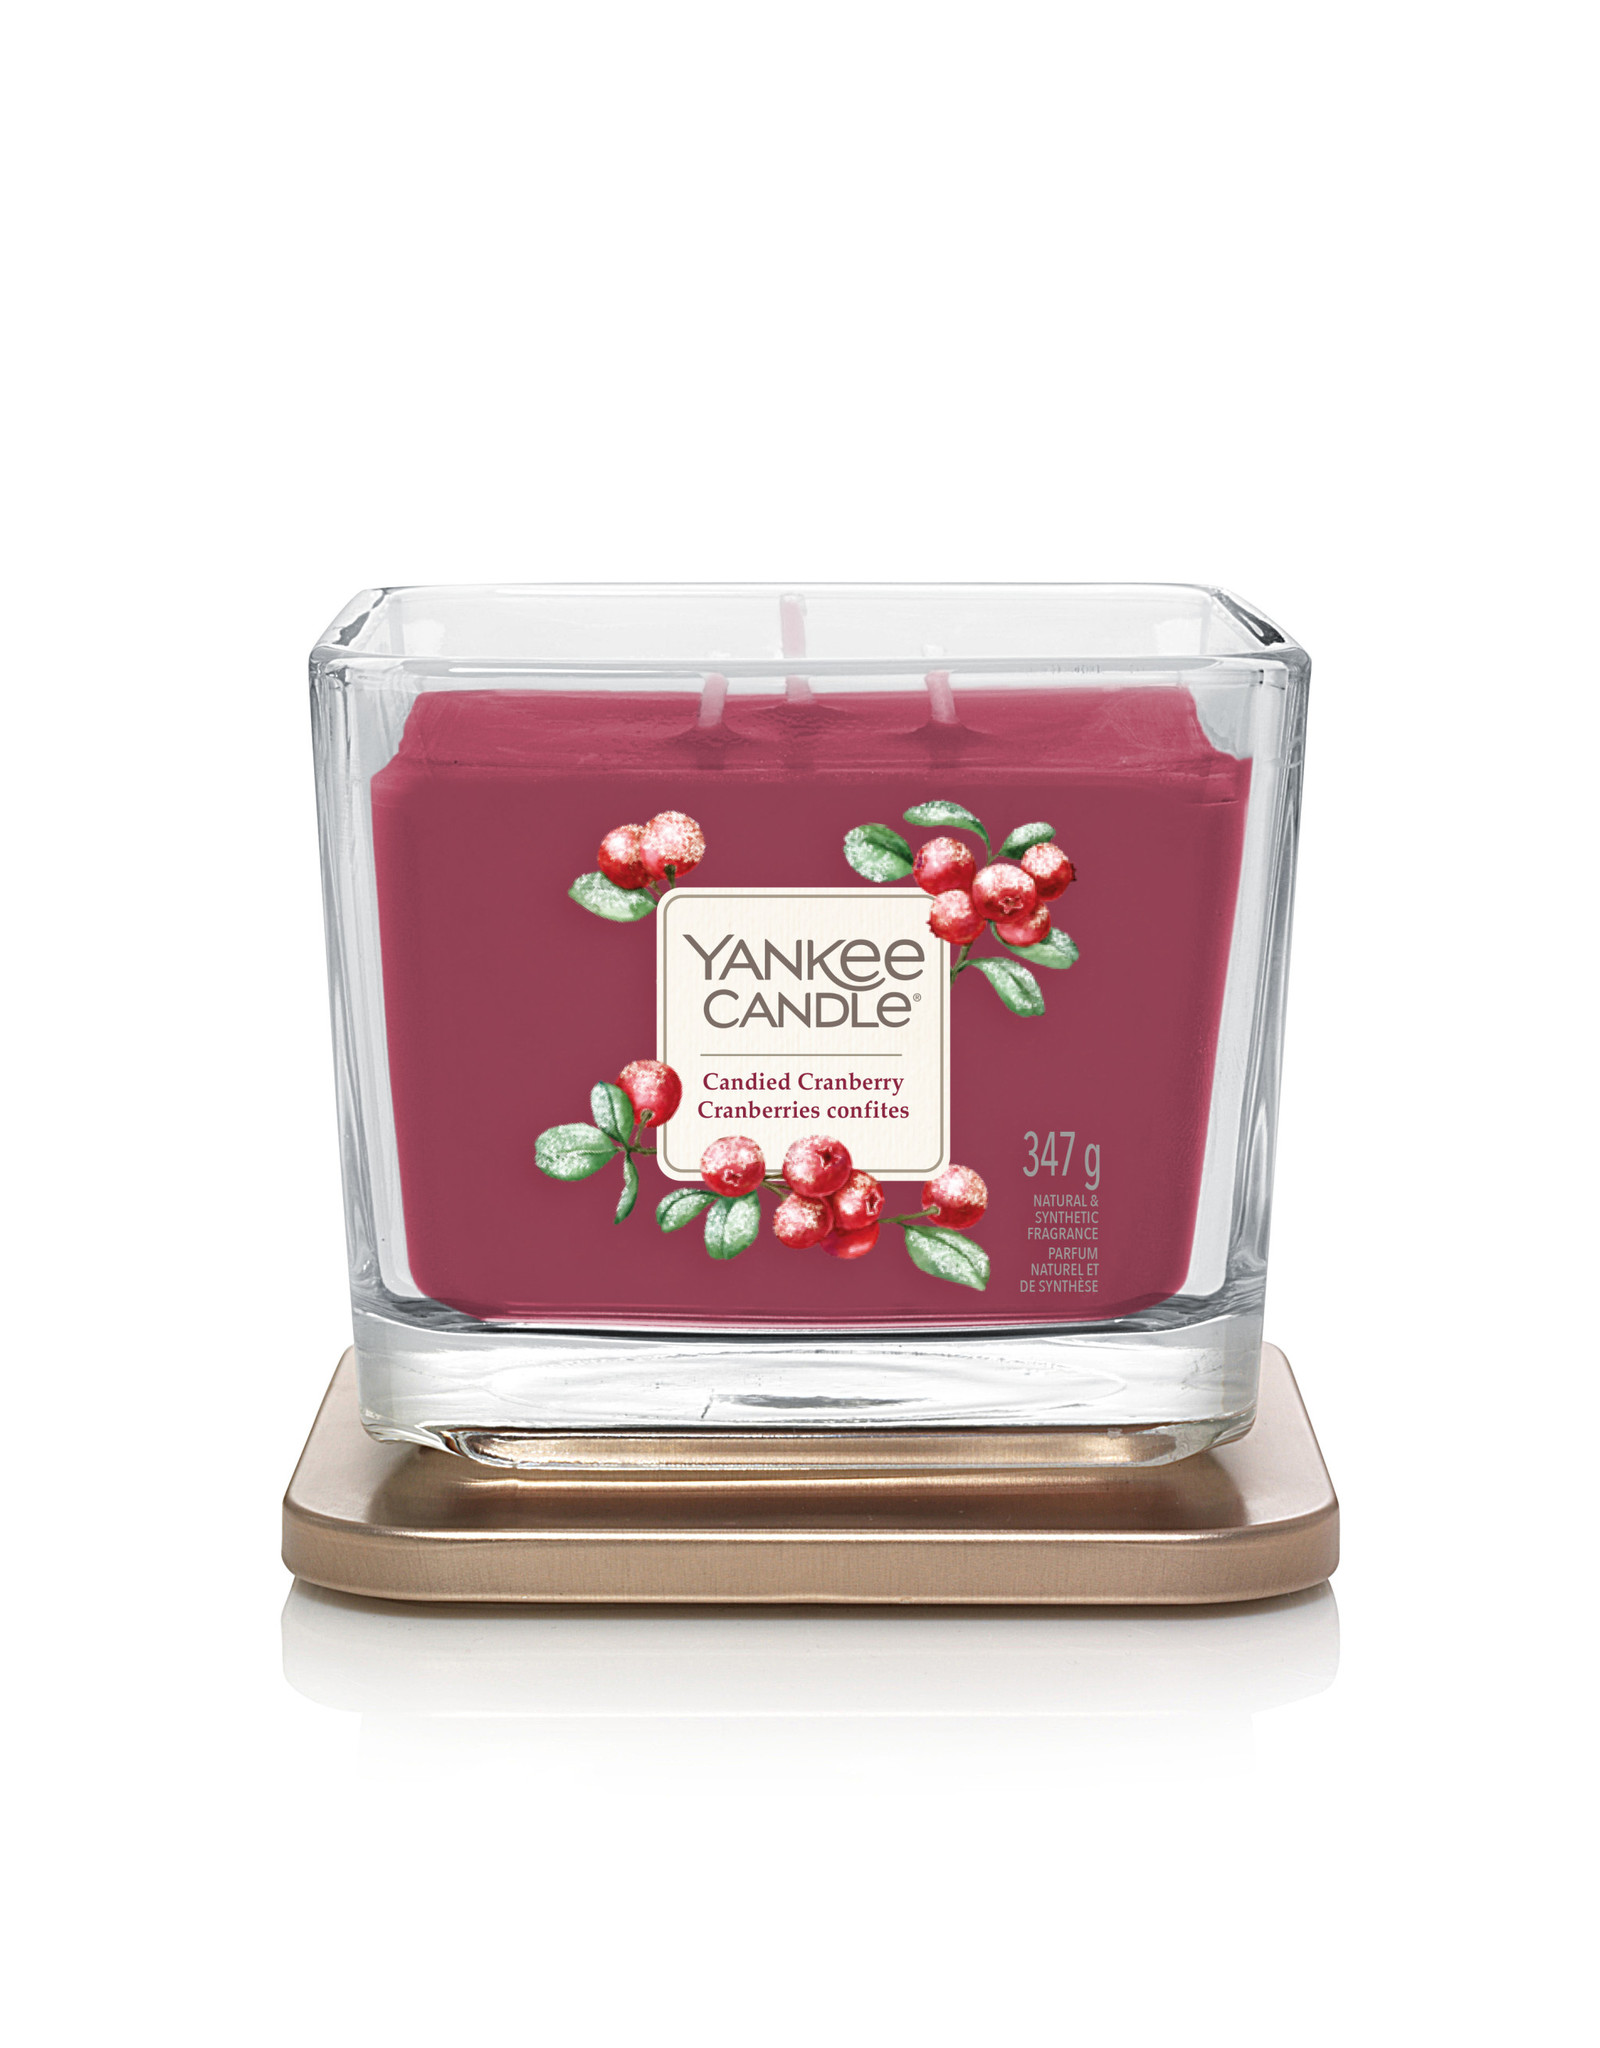 Yankee Candle Candied Cranberry - Medium Vessel